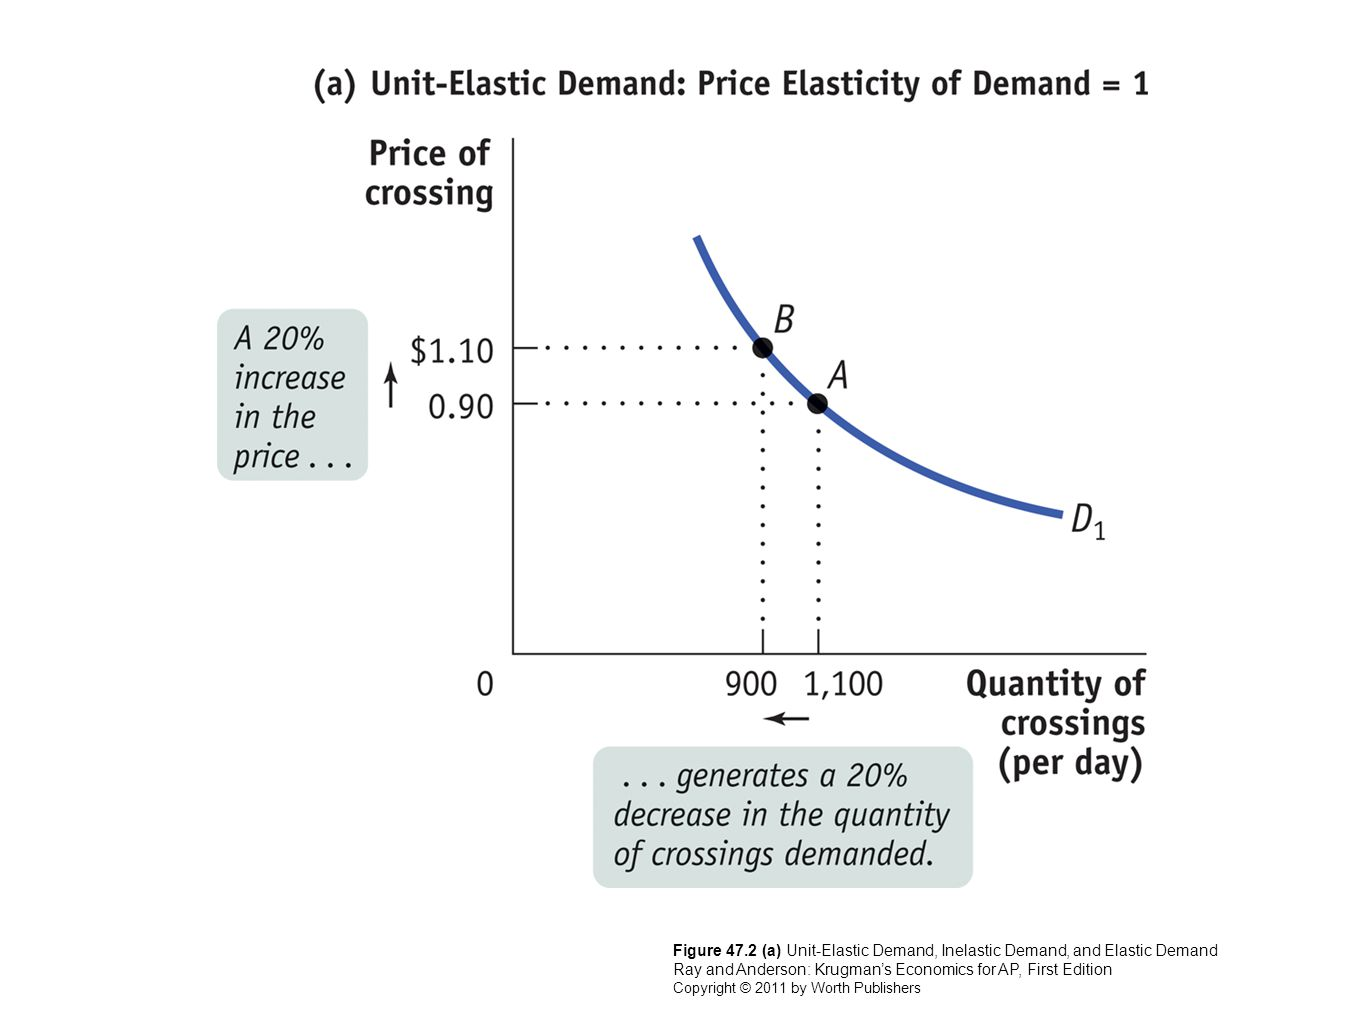 Figure 47.2 (a) Unit-Elastic Demand, Inelastic Demand, and Elastic Demand Ray and Anderson: Krugman's Economics for AP, First Edition Copyright © 2011 by Worth Publishers